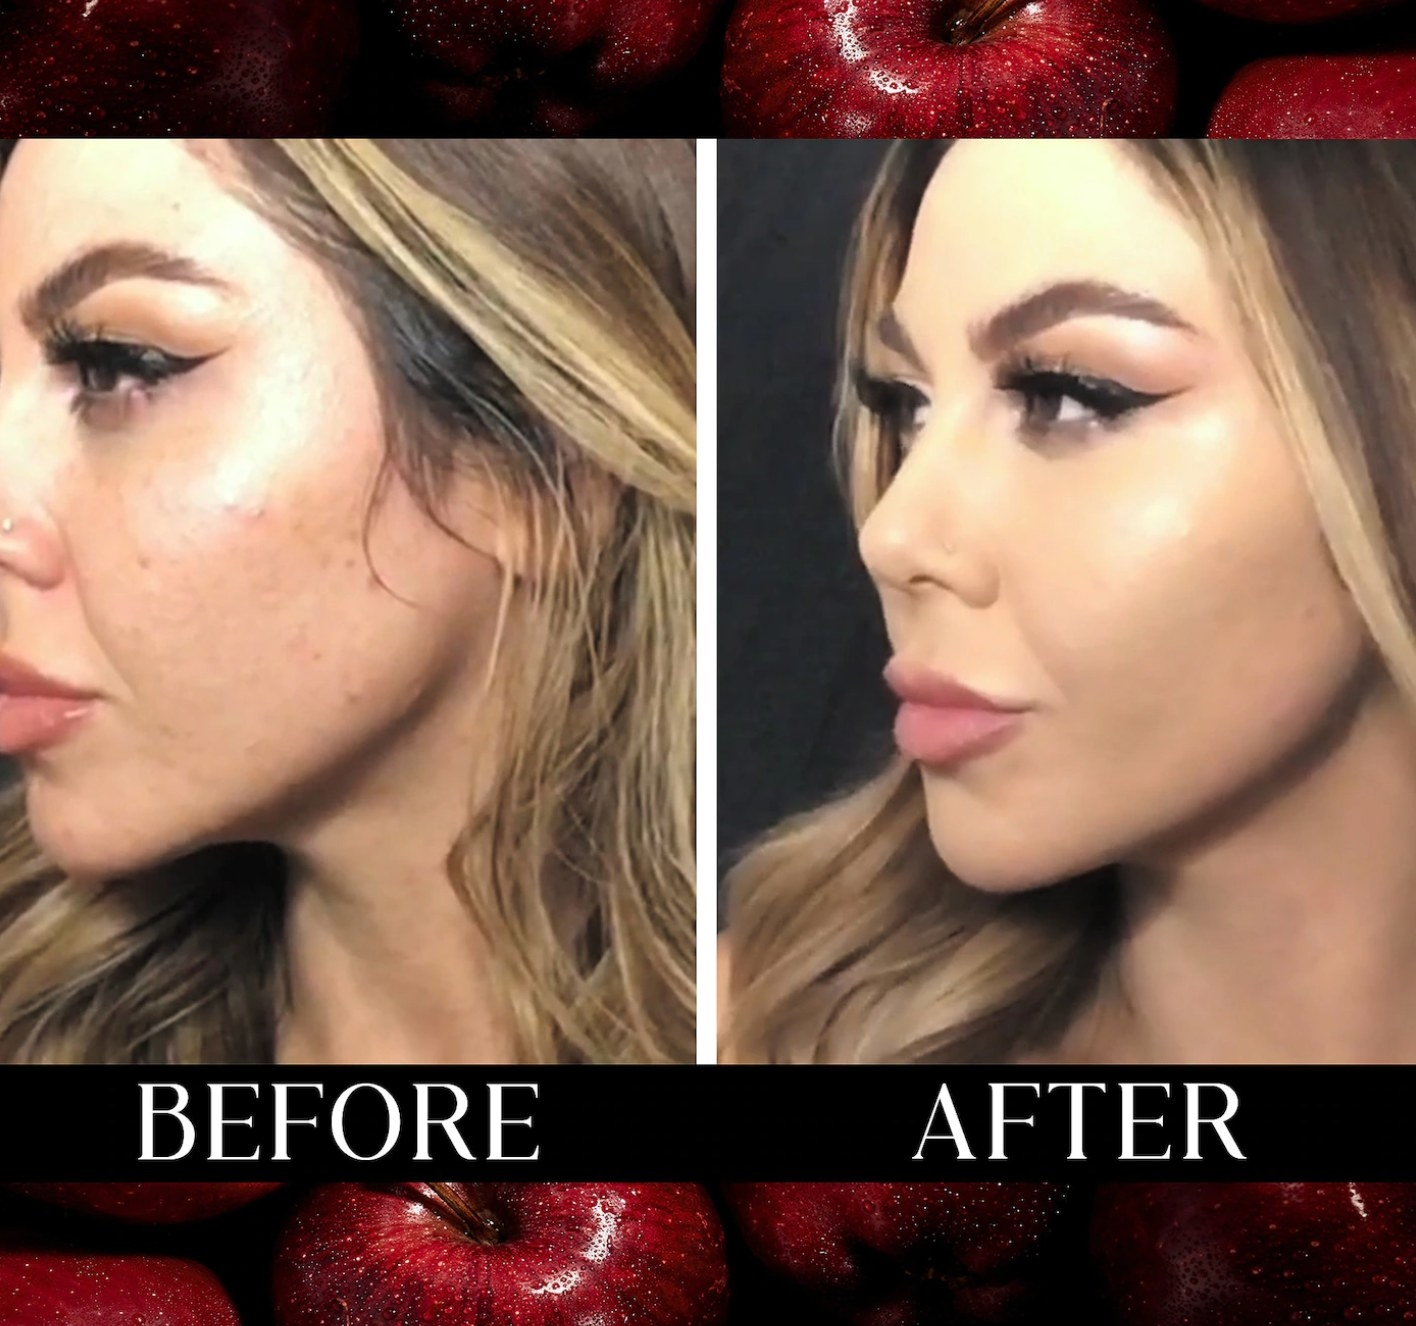 Model showing her face before and after the KVD Good Apple foundation